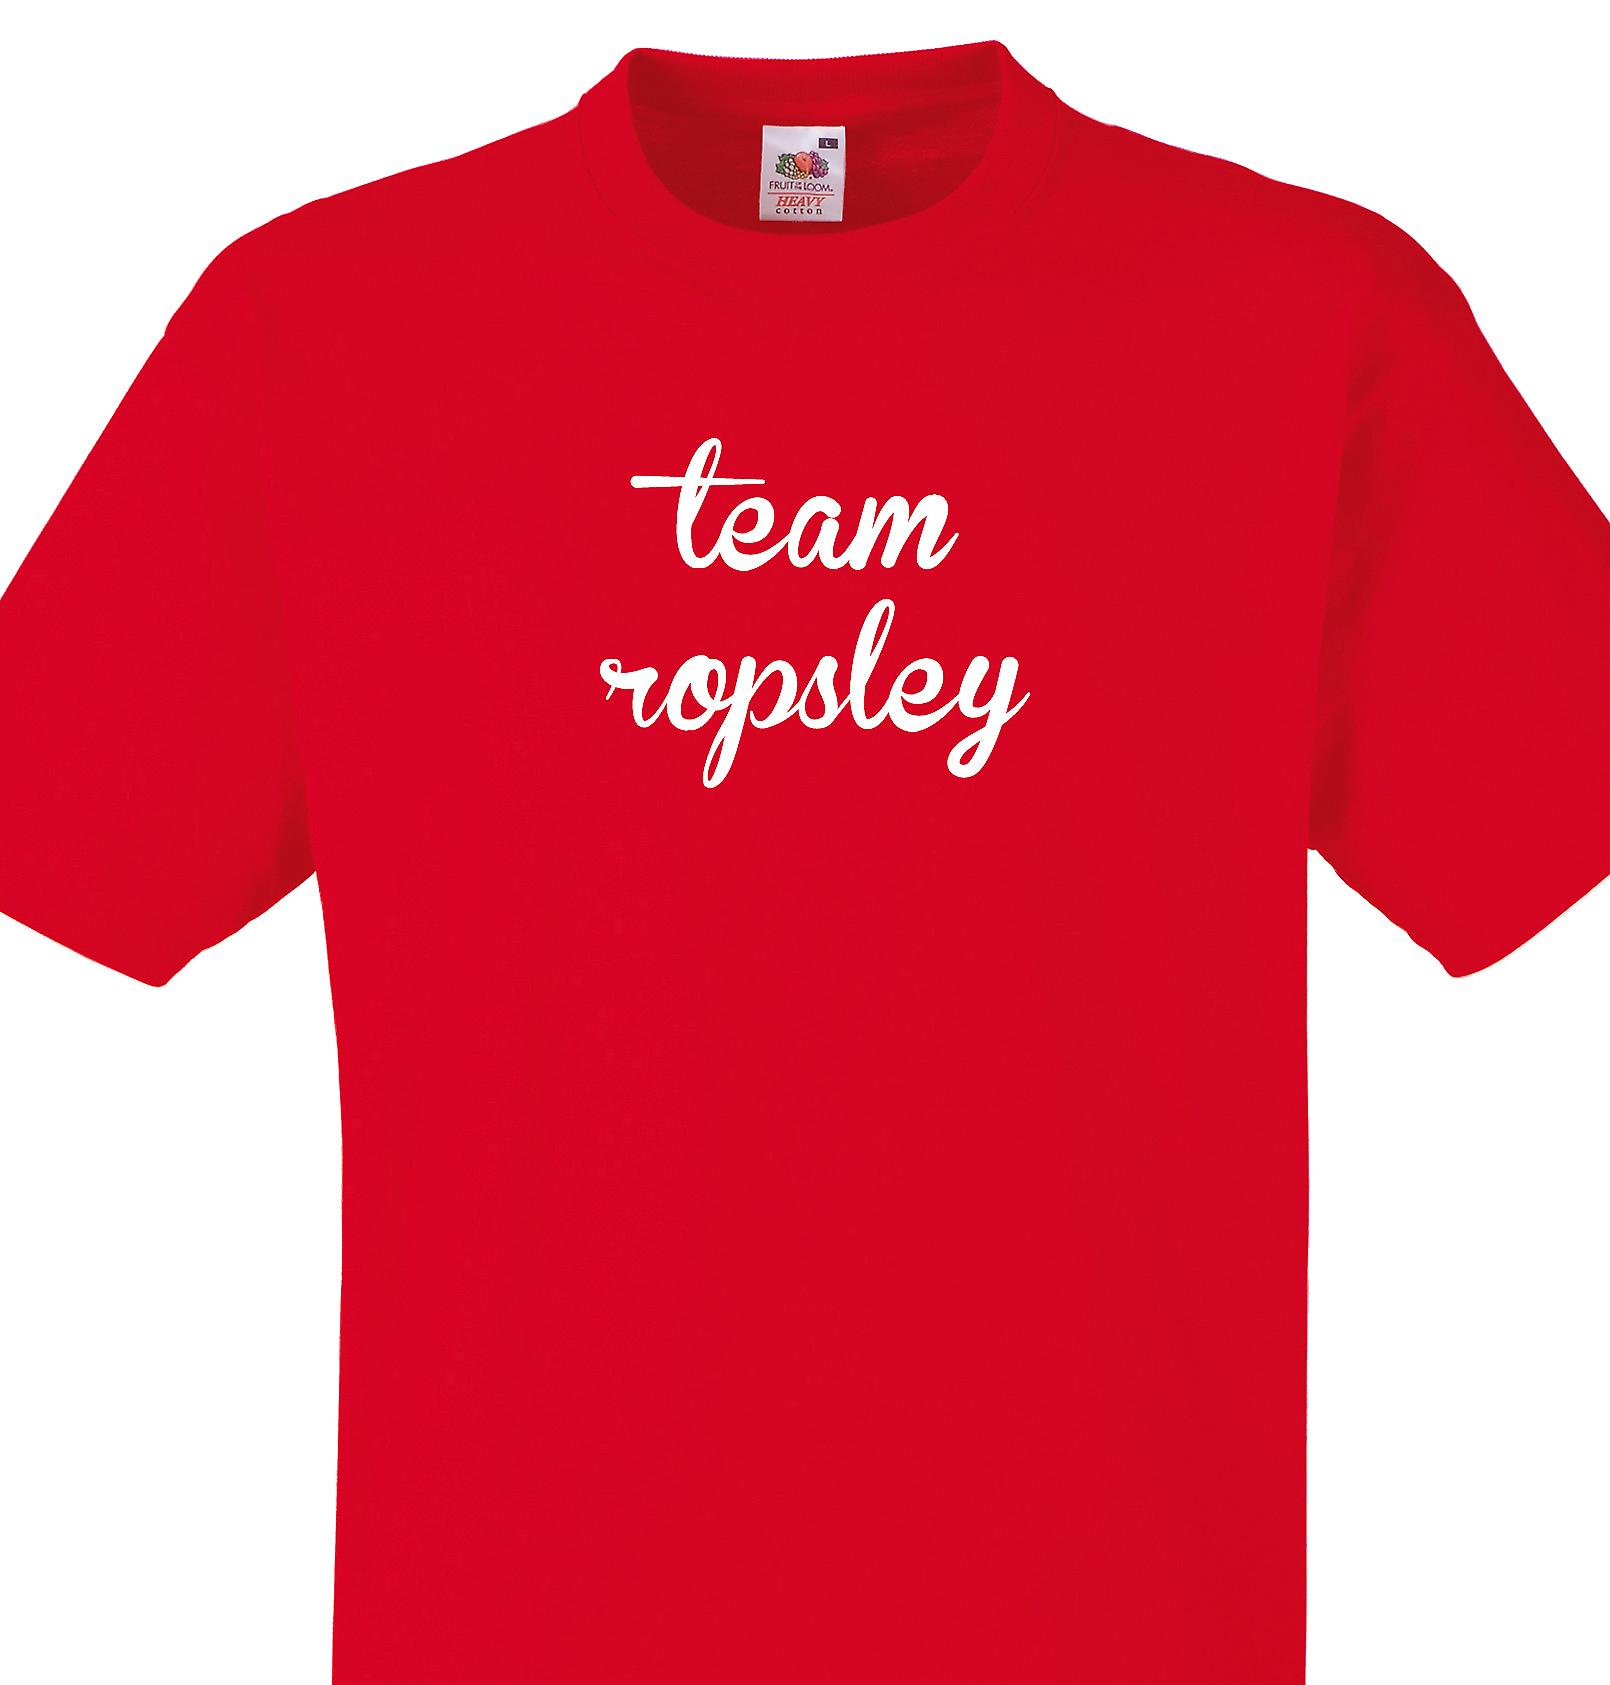 Team Ropsley Red T shirt